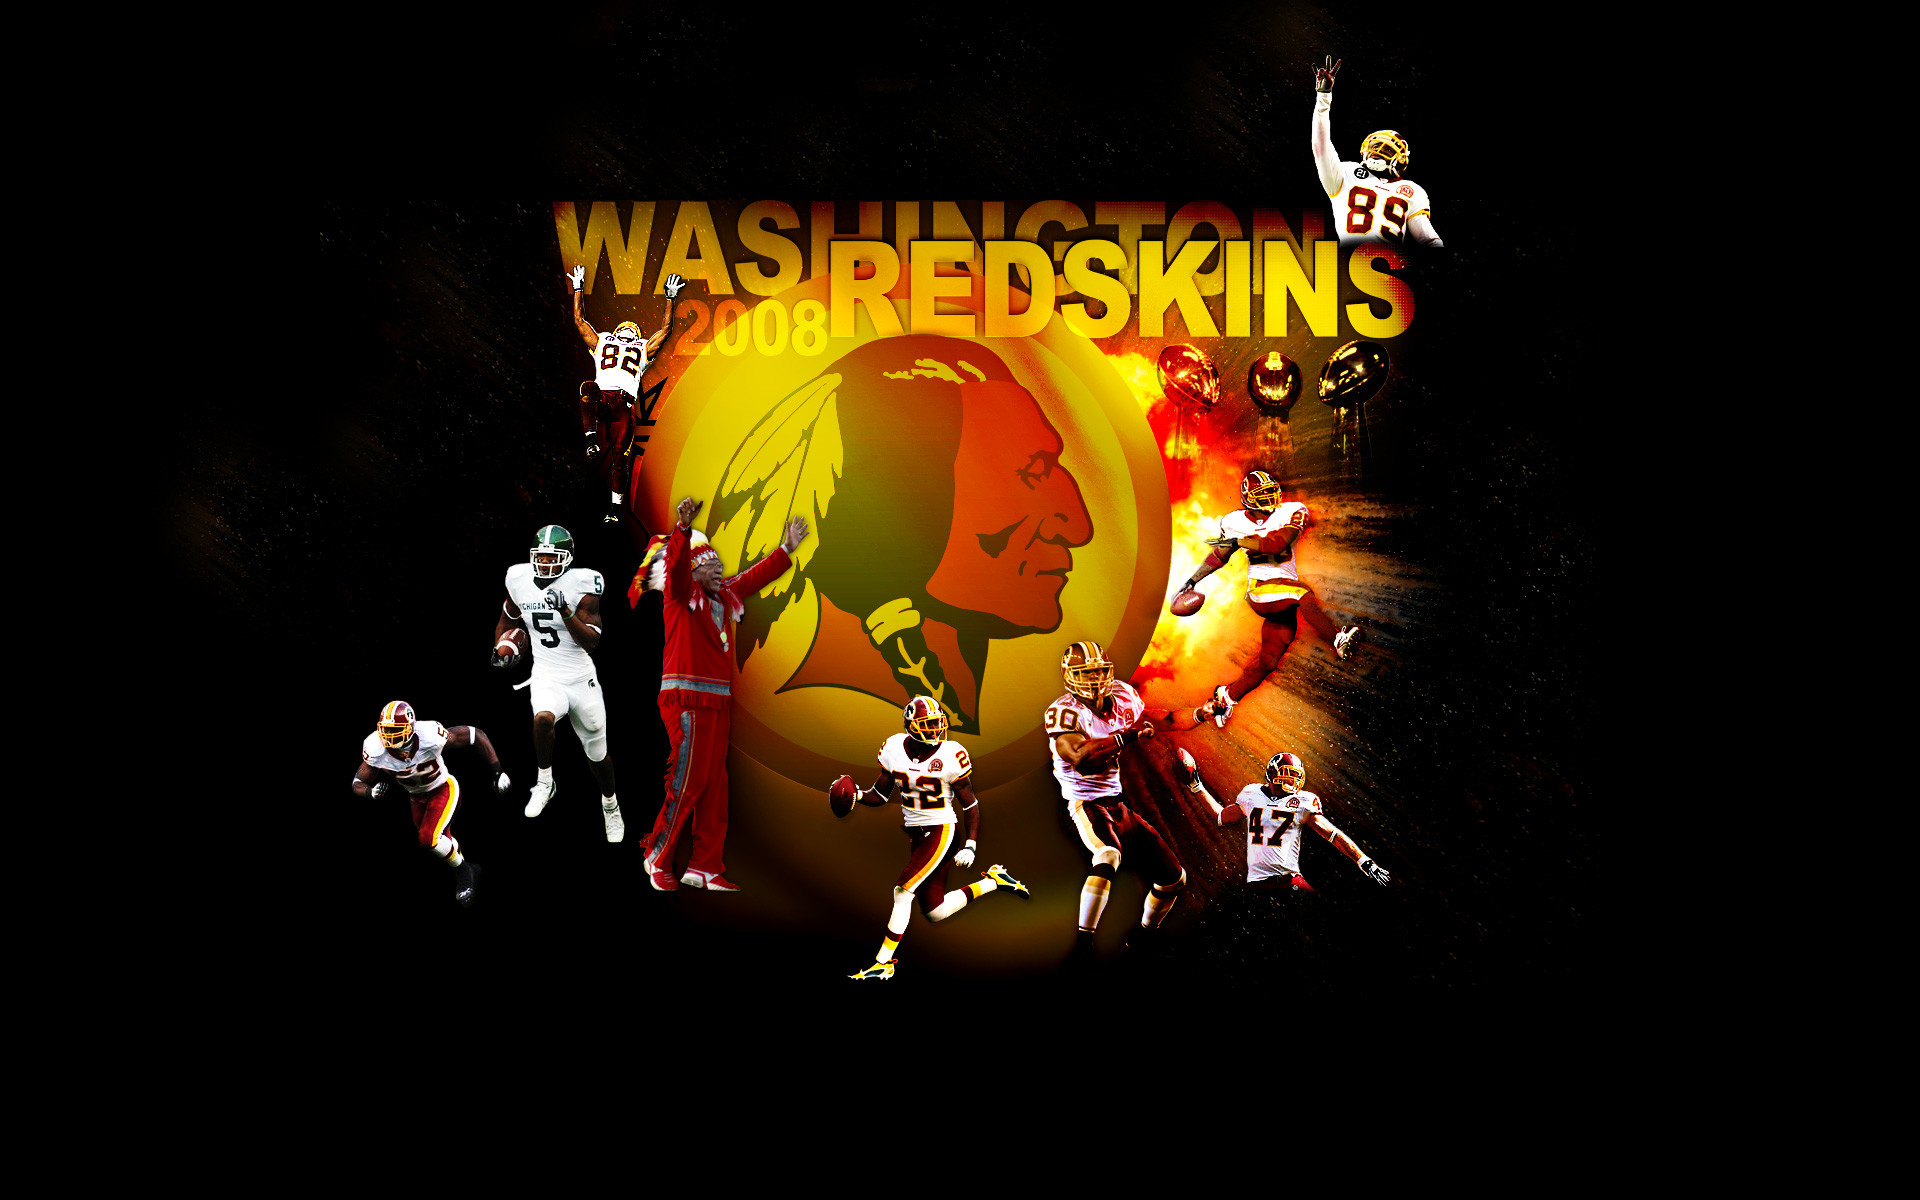 Washington Redskins Wallpapers | HD Wallpapers Early